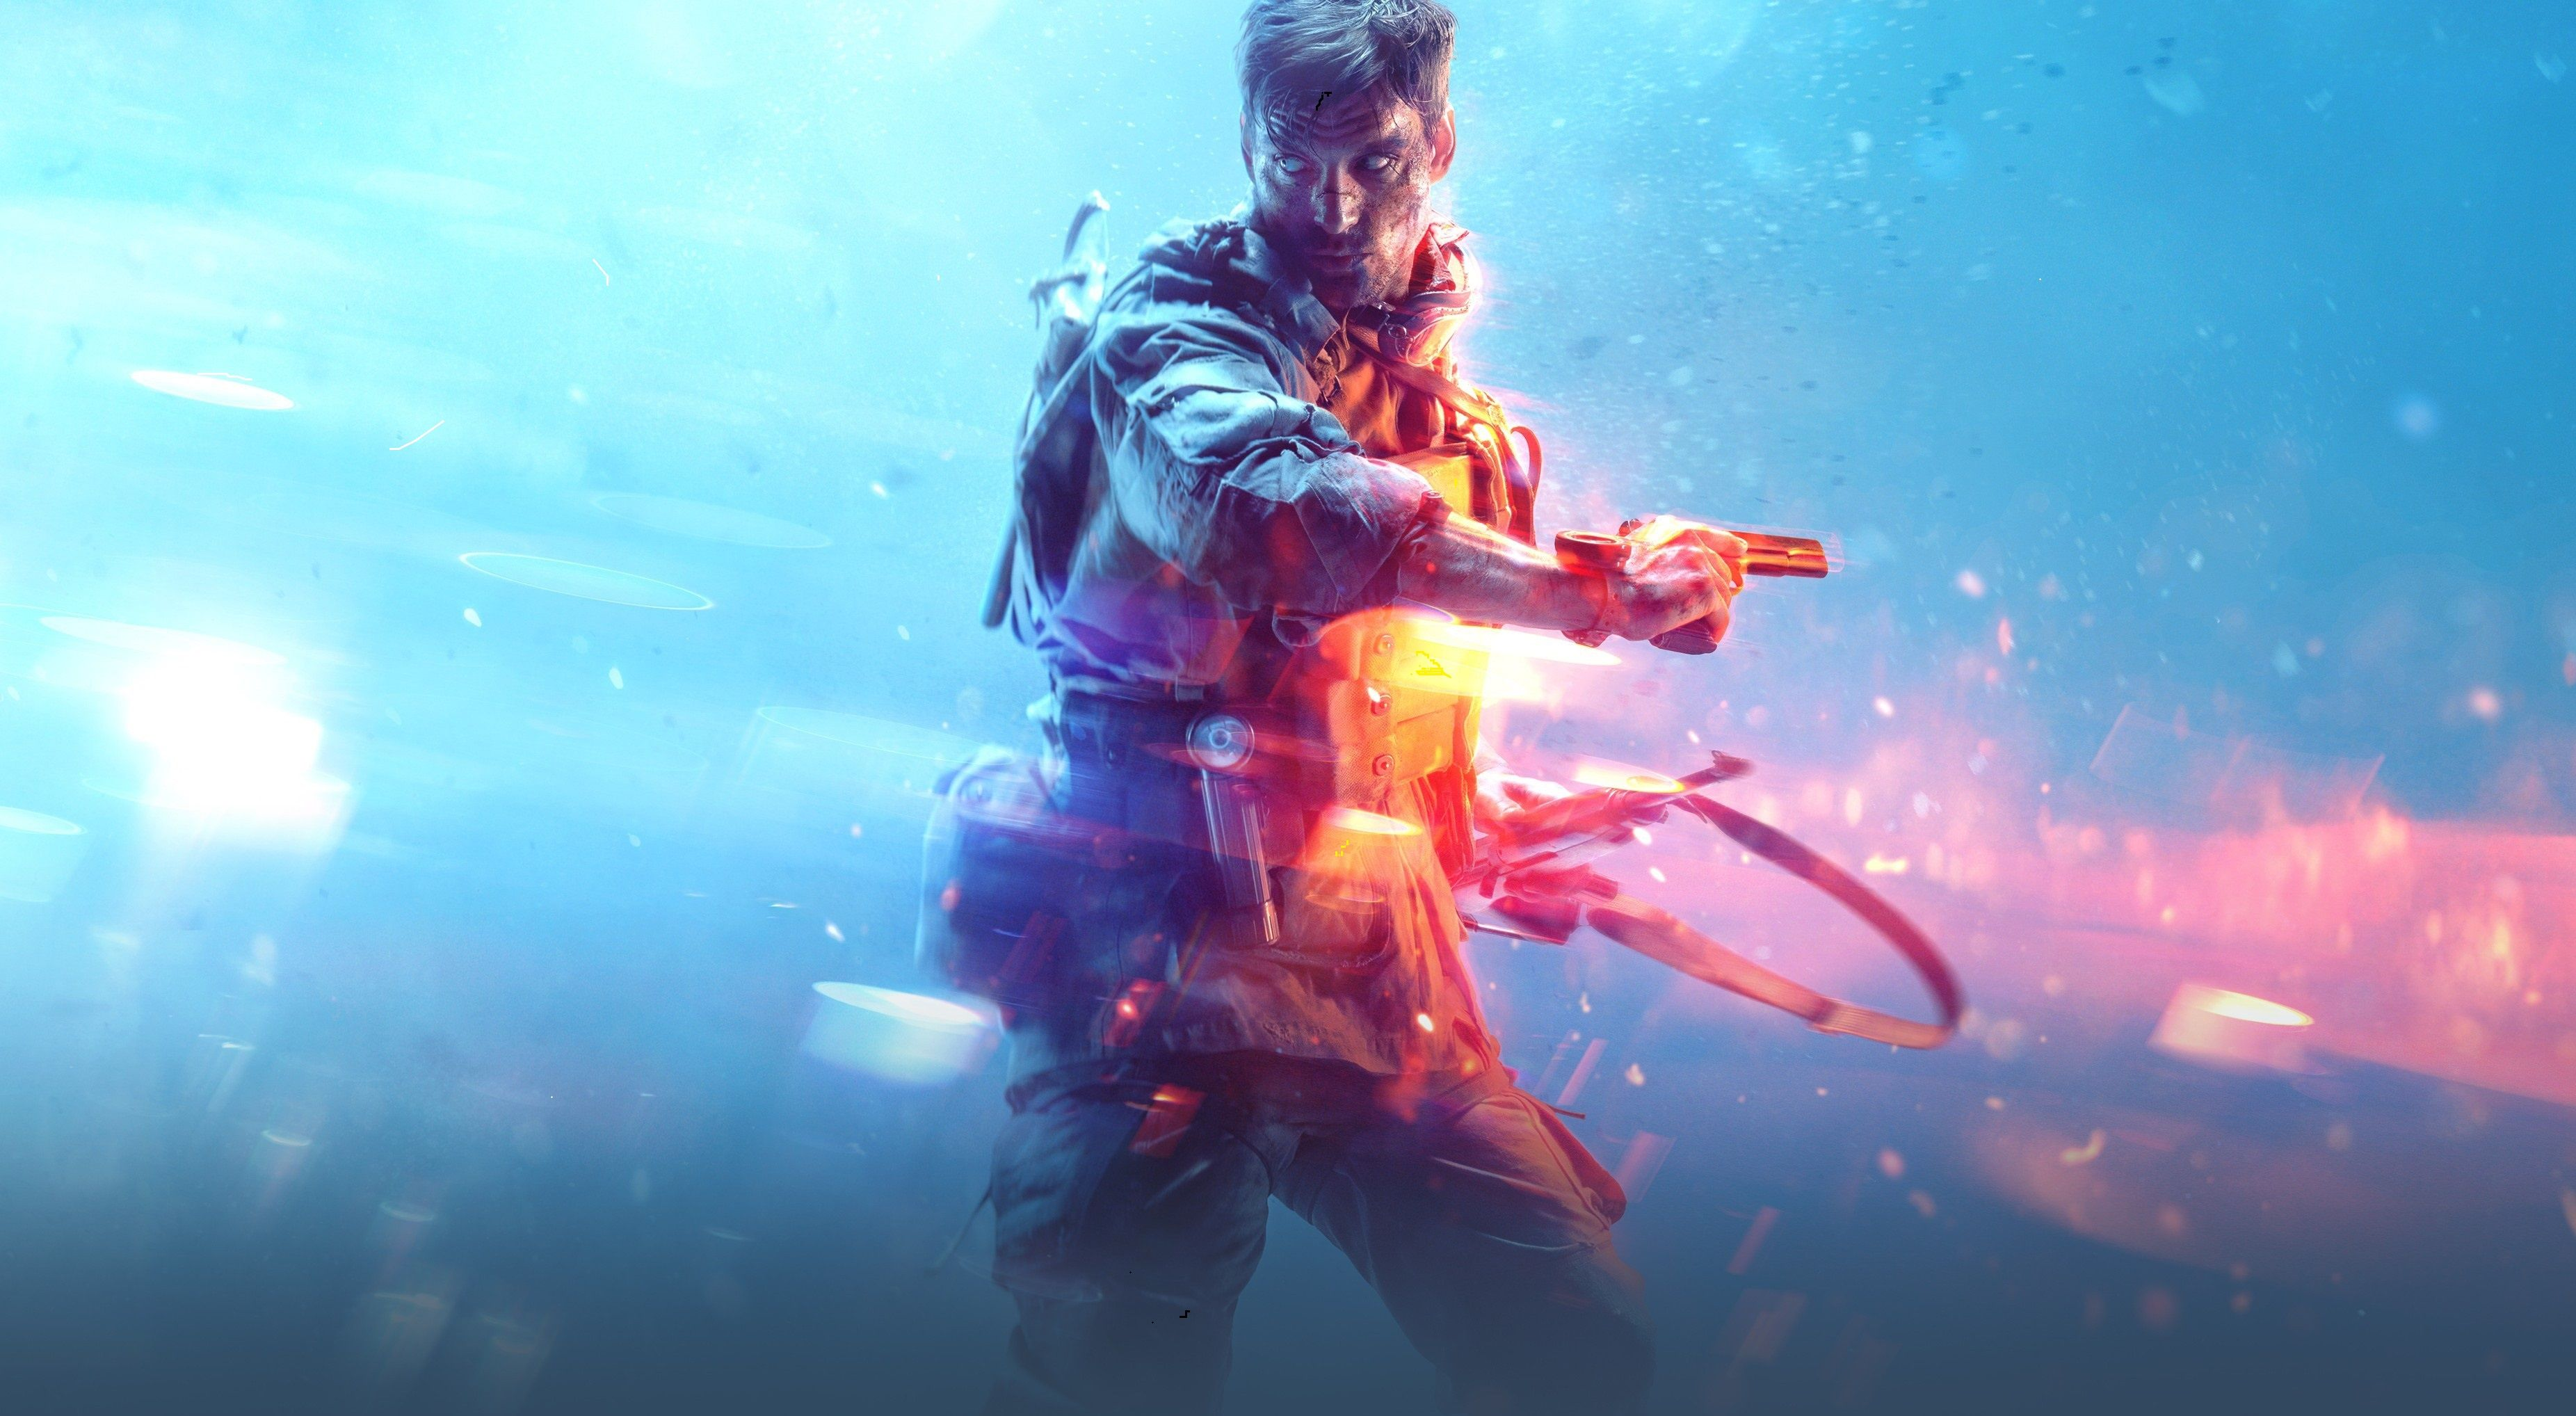 Battlefield 5 Game Wallpaper 4k Download Full Hd Wallpapers